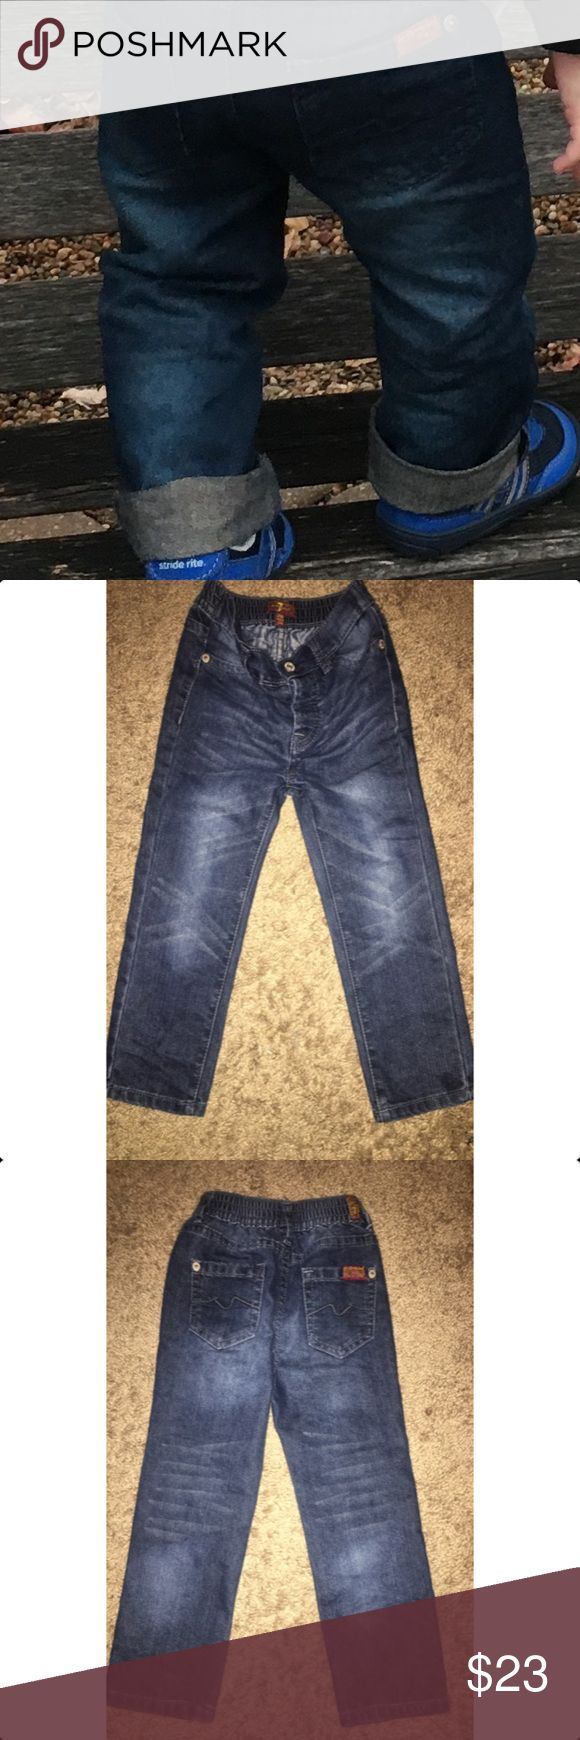 Toddler Boy 7 for All Mankind 24 M Month Jeans Worn once and in excellent condition 24 Month toddler jeans / no stains / no tears / retail for $49.00 (currently regular price) no trades 7 For All Mankind Bottoms Jeans